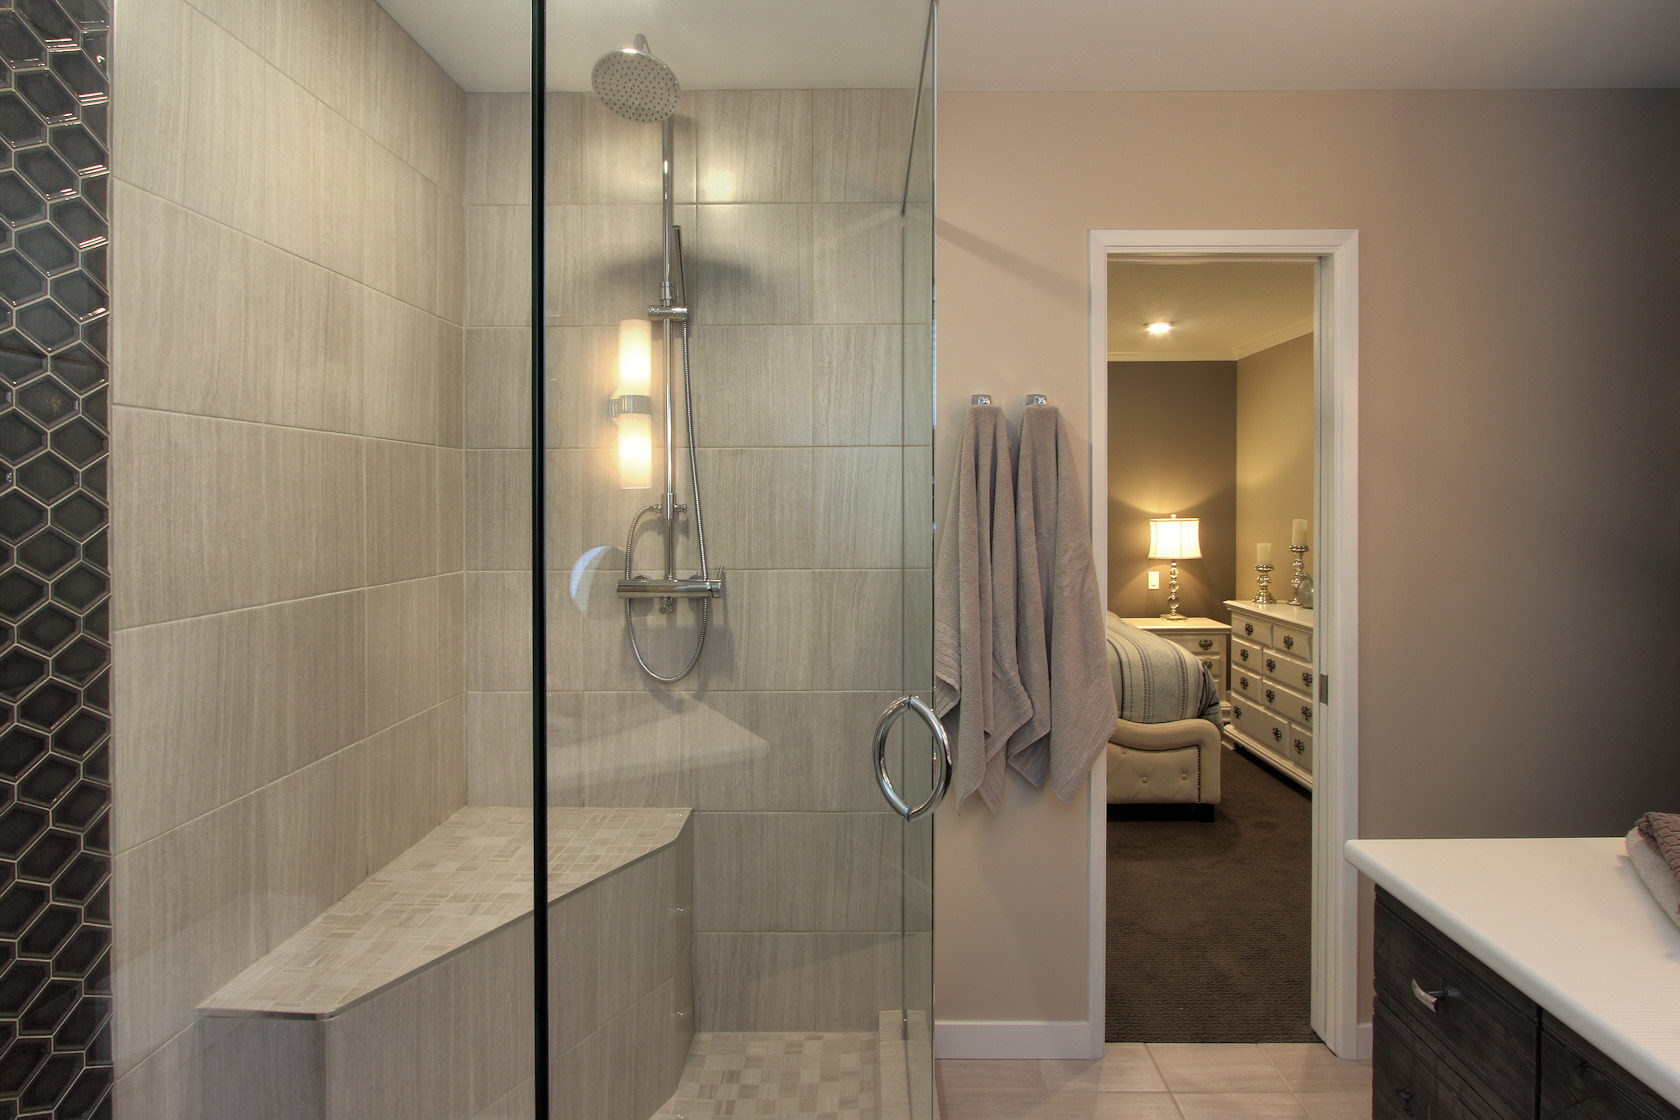 Interior Design Kelowna - Custome bathroom design by Creative Touch Interiors